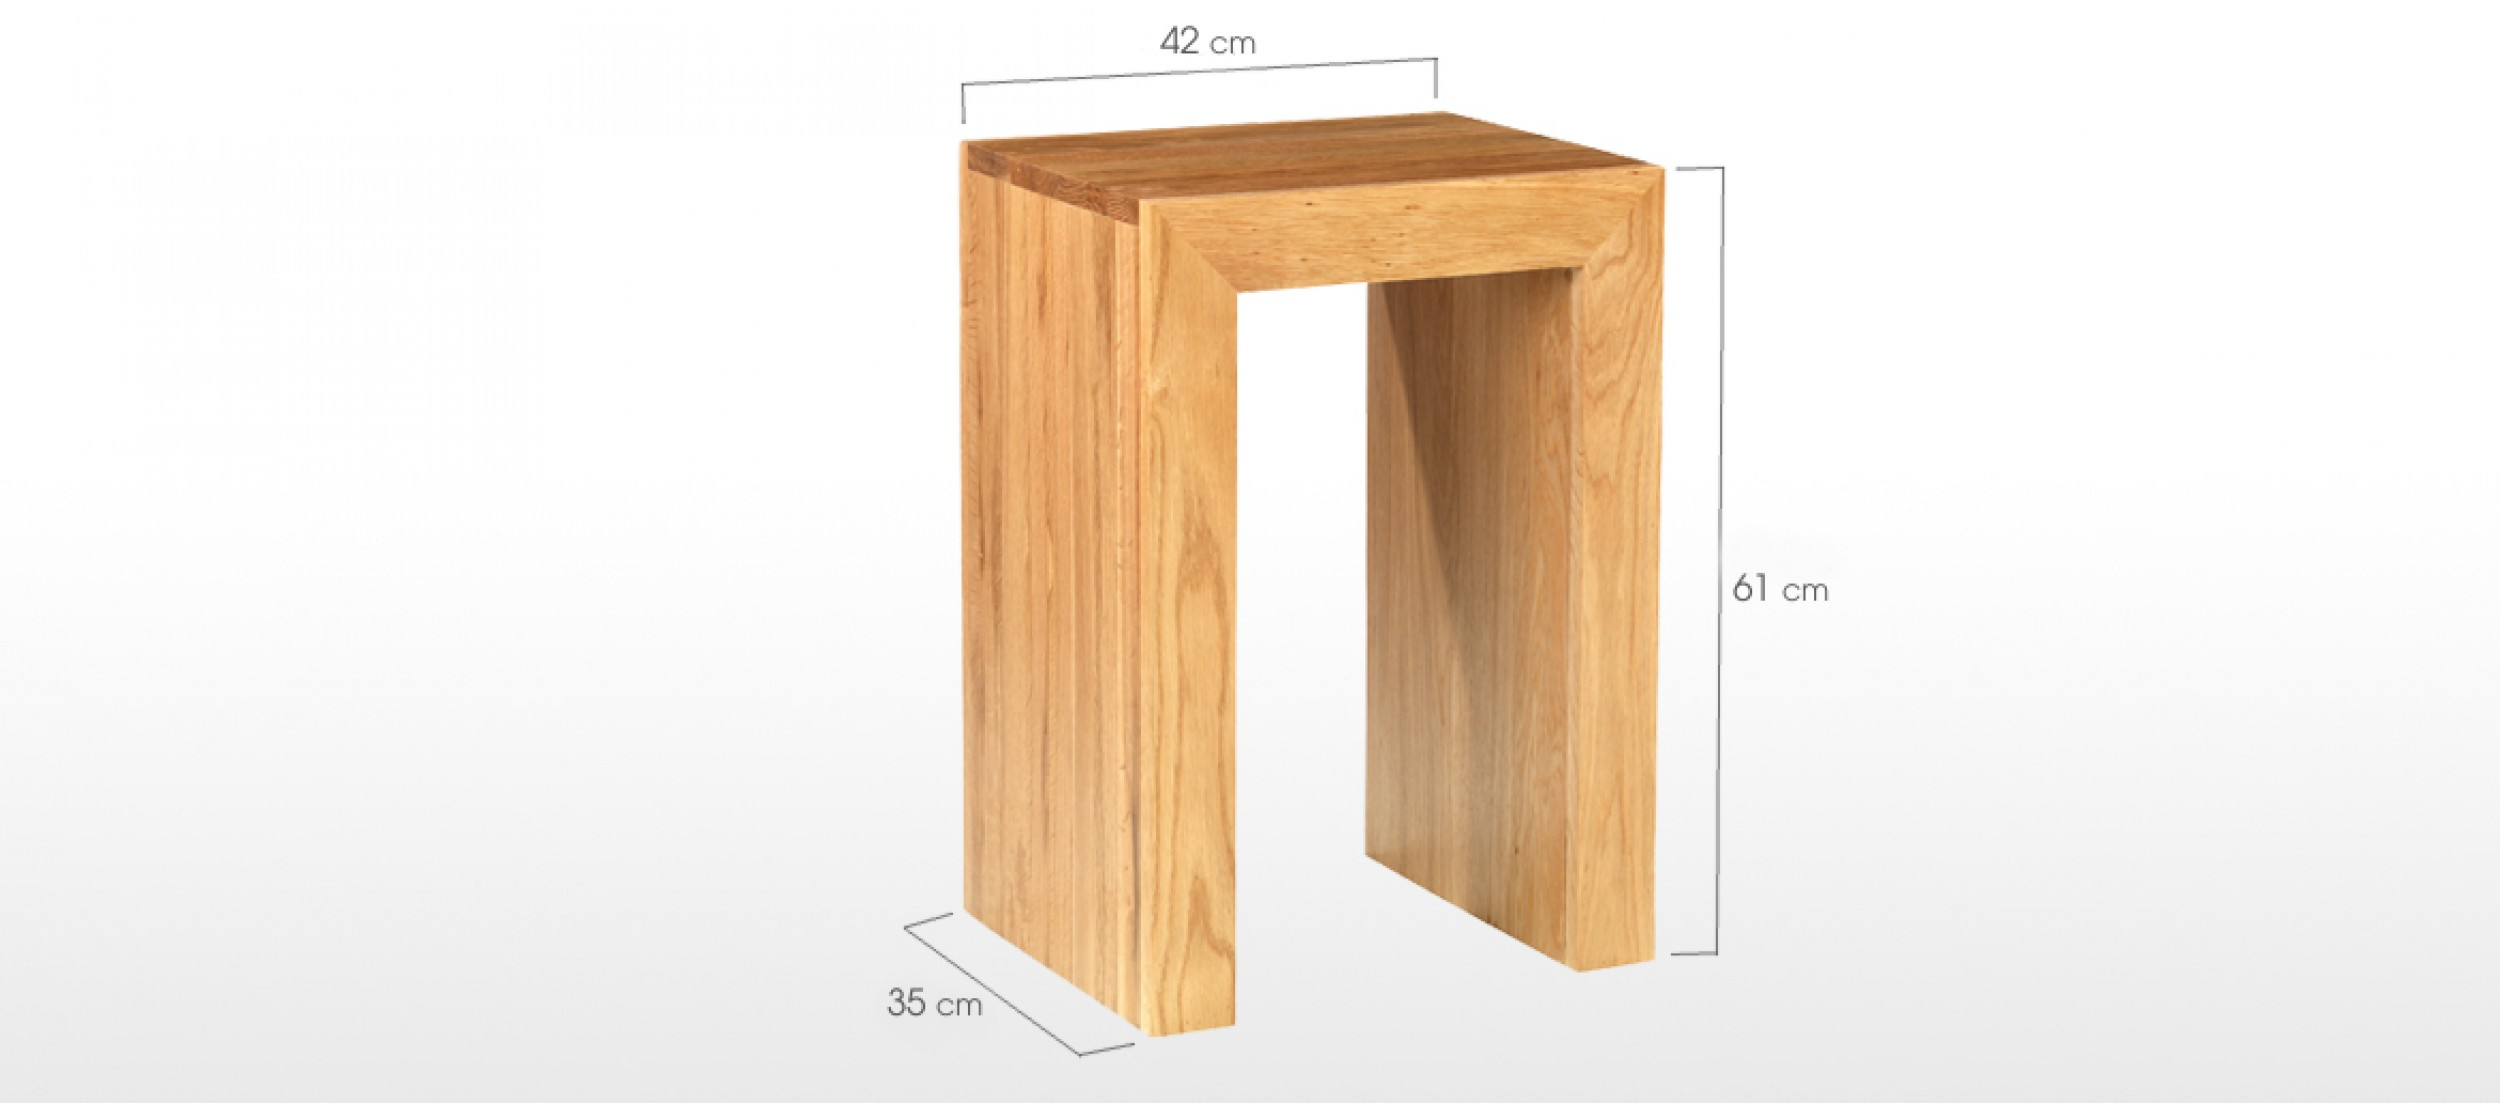 Cube oak lamp table quercus living cube oak lamp table geotapseo Image collections